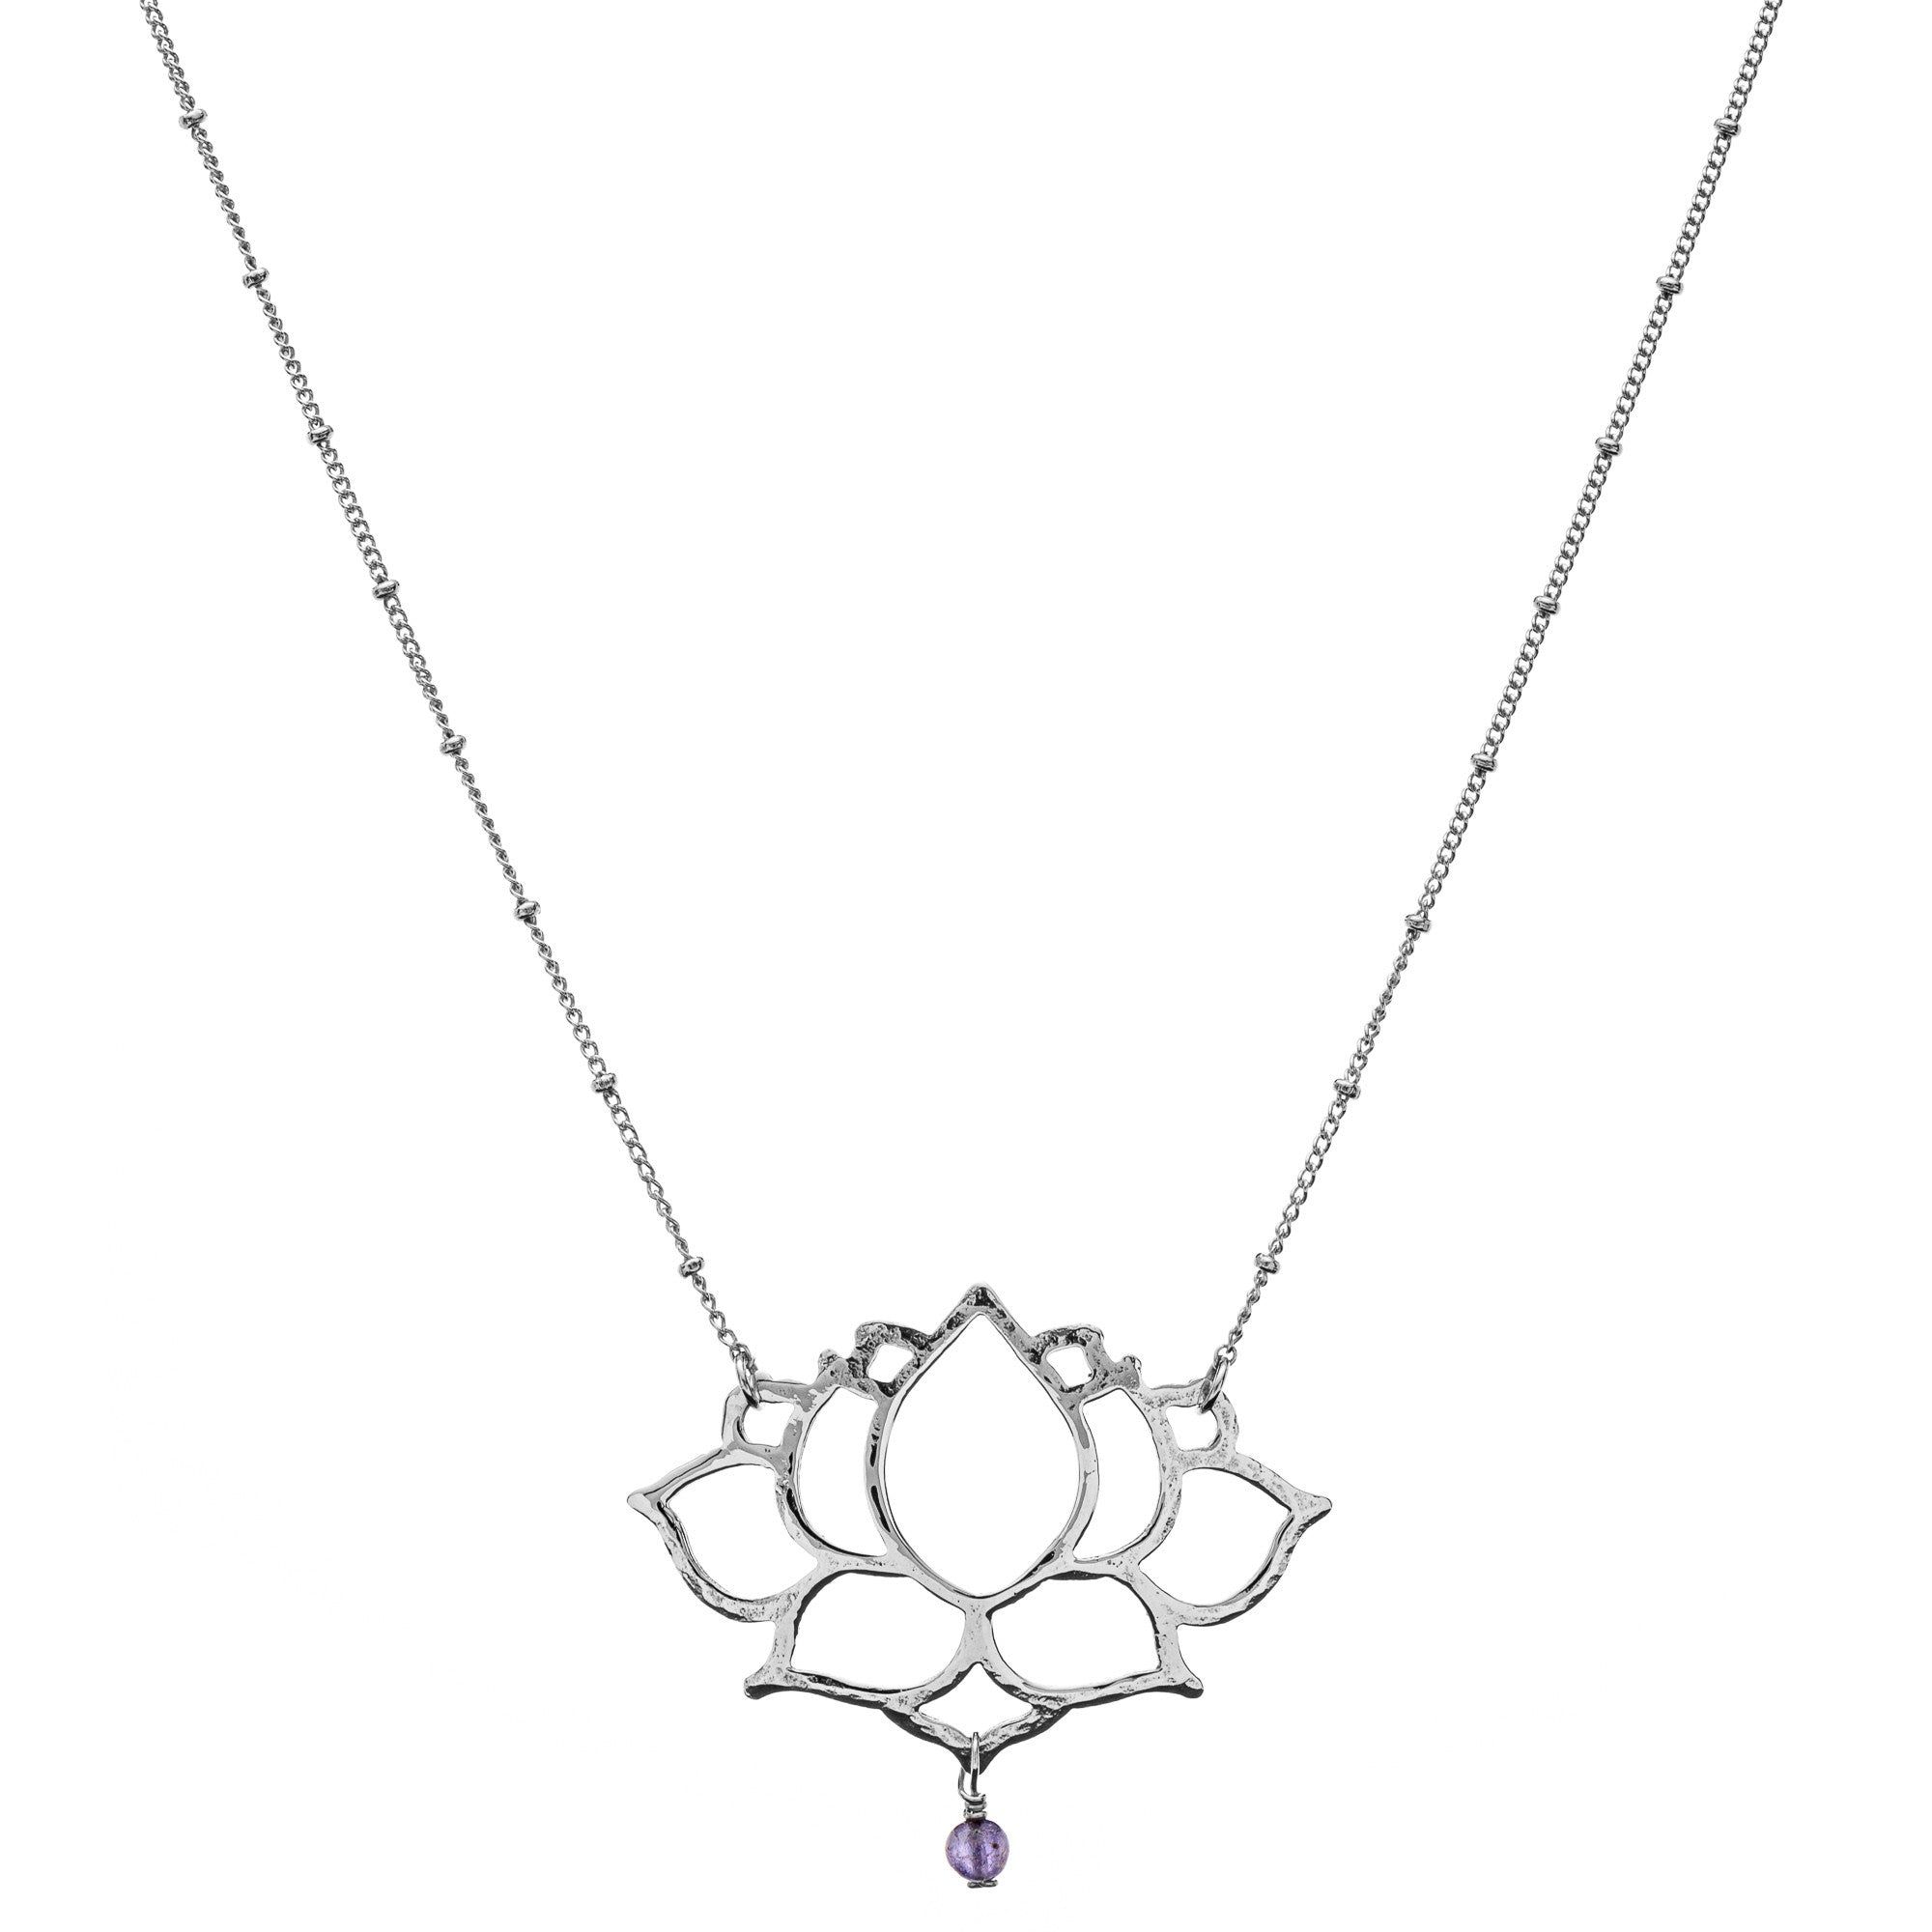 L Lotus Pendant with Sivan Chain Necklace